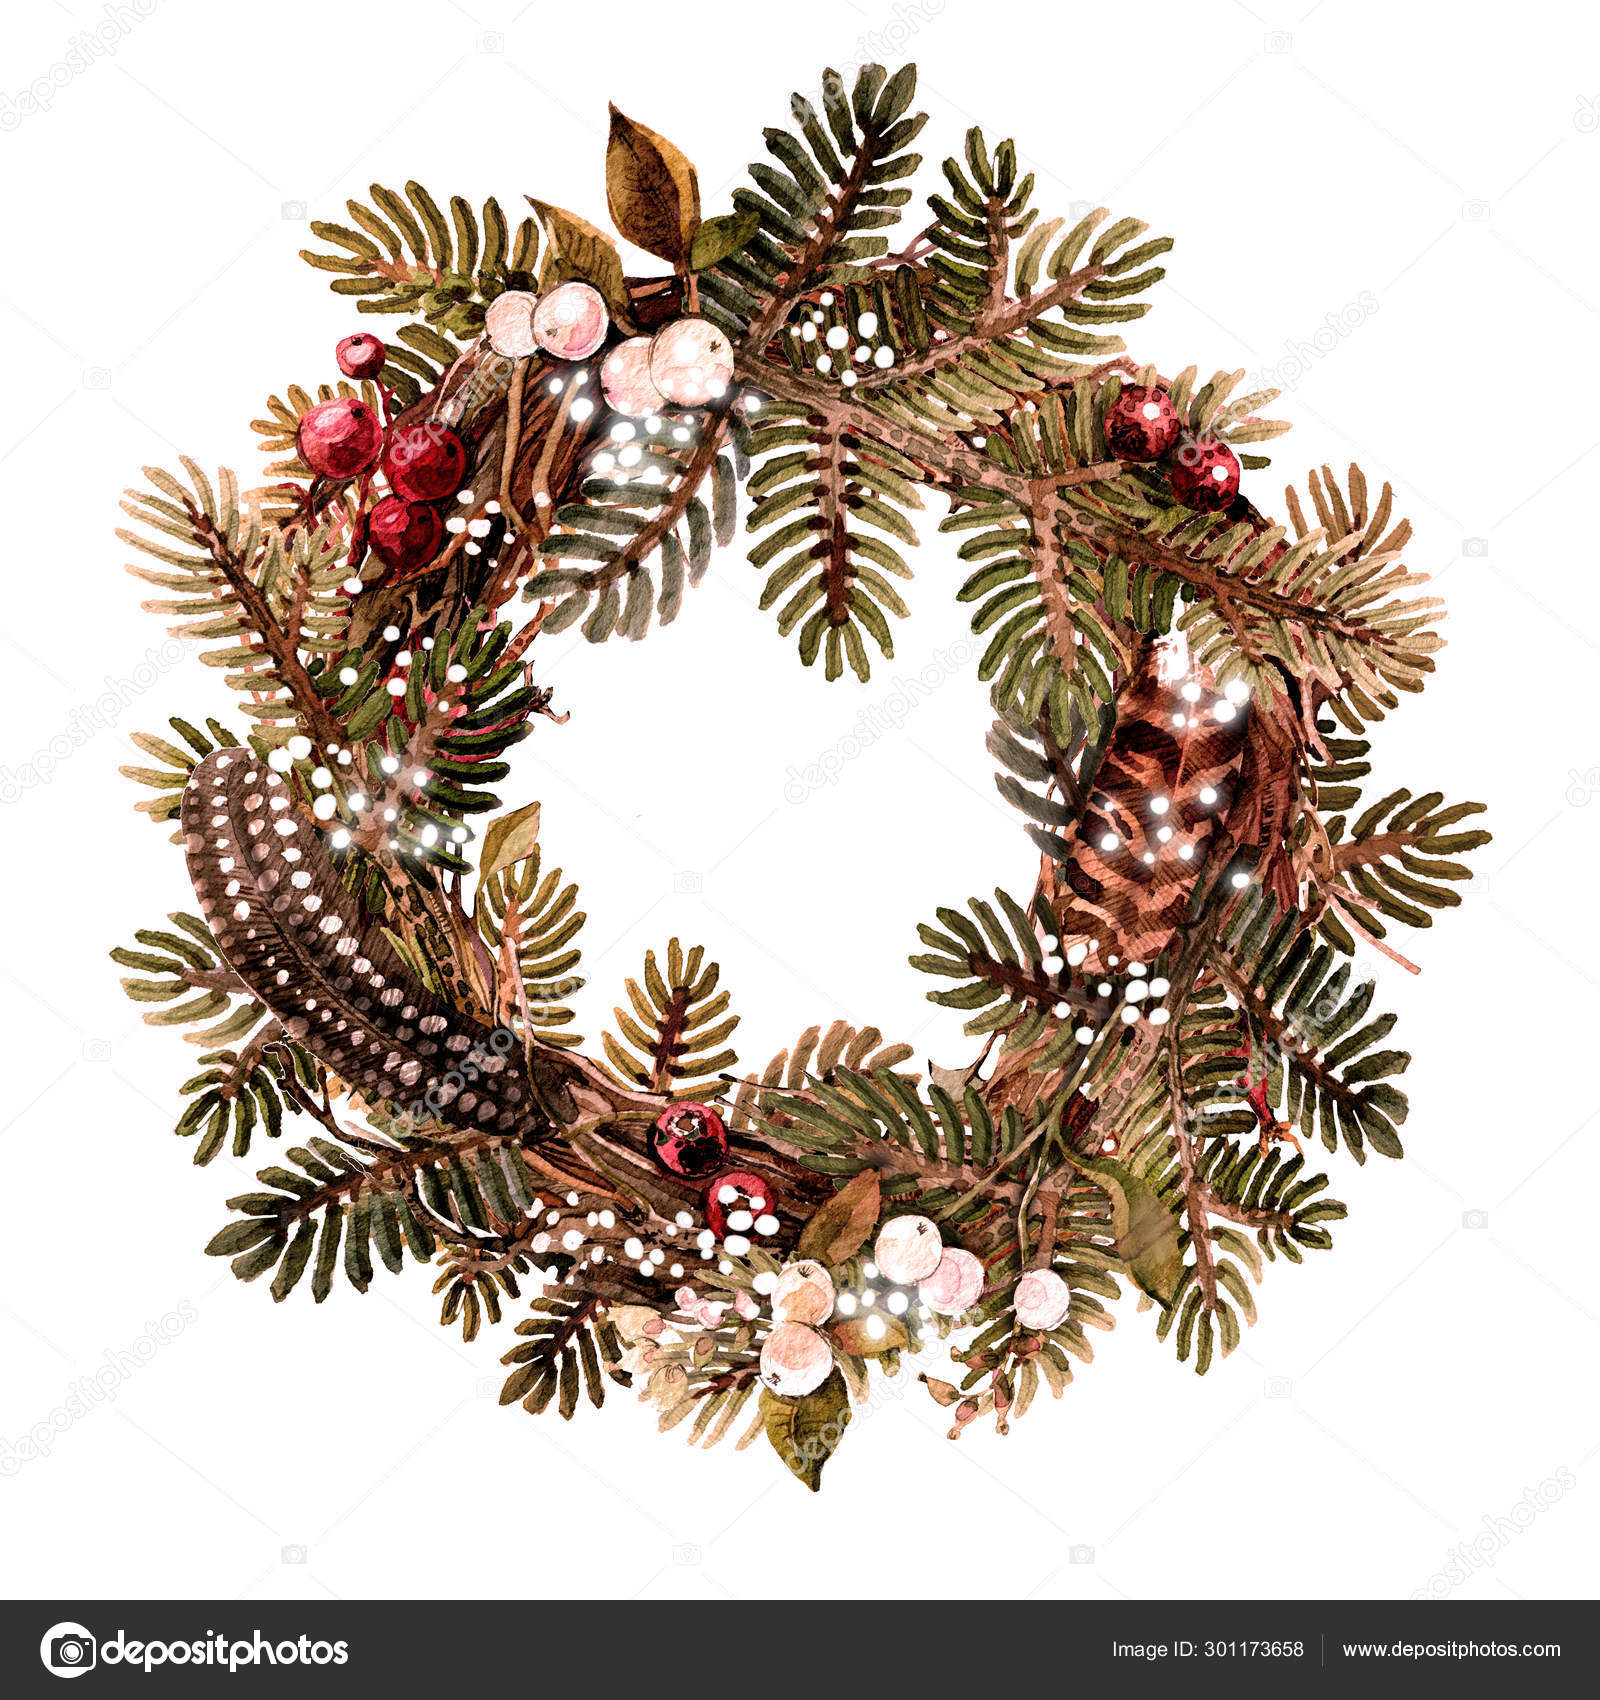 Christmas Holiday Wreath Made Of Natural Materials Branches Spruce Feathers Berries Watercolor Illustration Handmade Stock Photo Image By C Ivakhnova Tatiyana Gmail Com 301173658